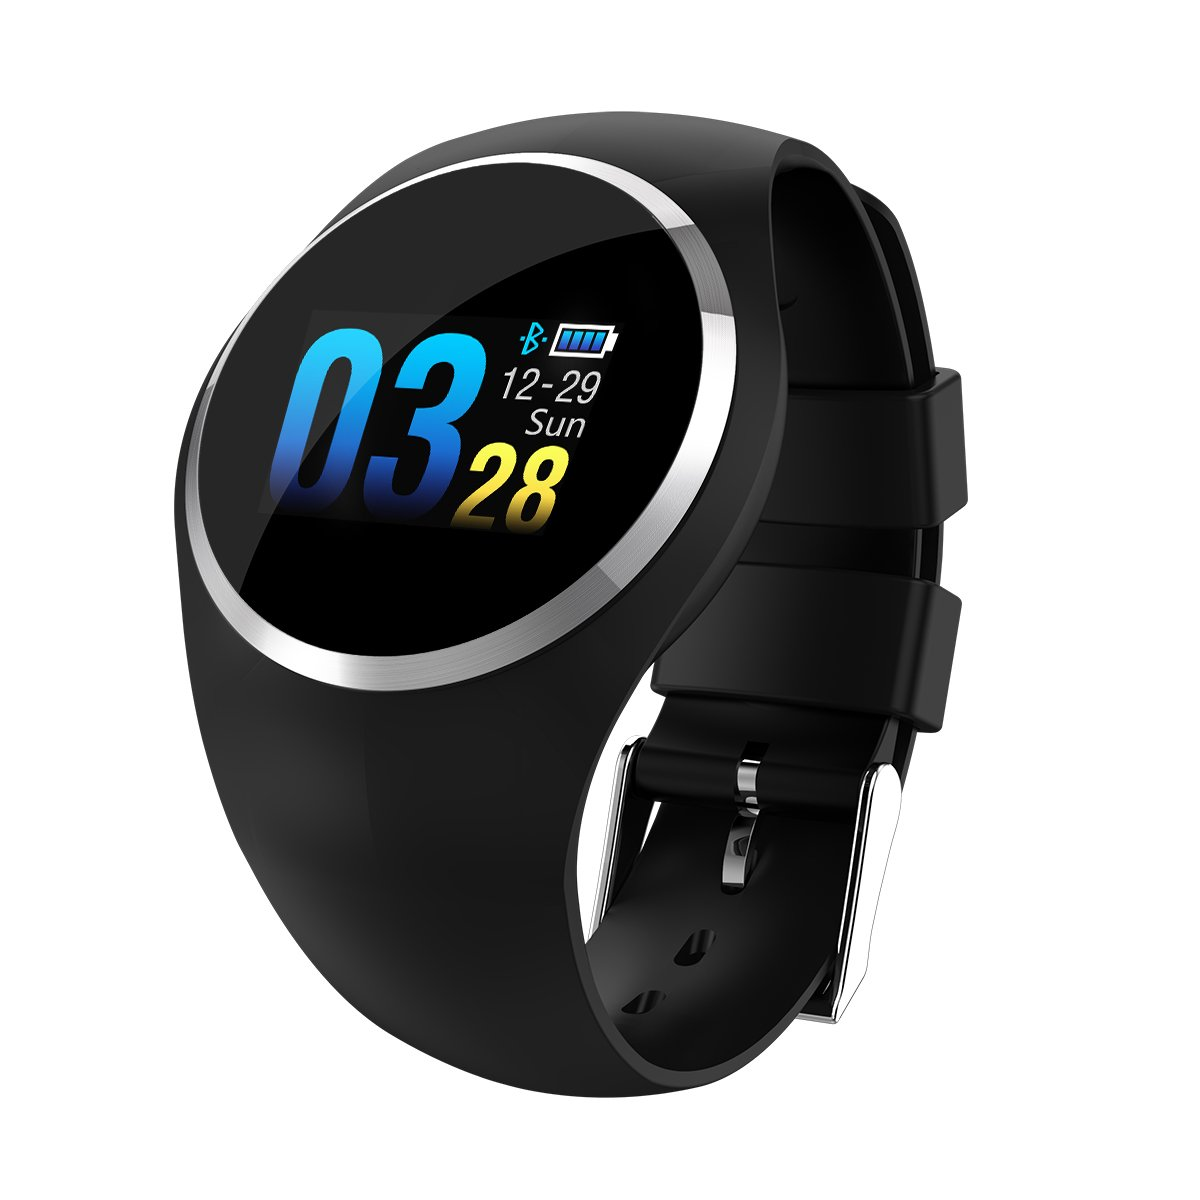 Fitness Tracker Smart Watch,VIEE Pedometer Watch Sport Wristband Activity Tracker IP67 Waterproof Slim Smart Band with Step Calorie Counter 20 Sports Modes,Pedometer for Kids Women Men (Black)